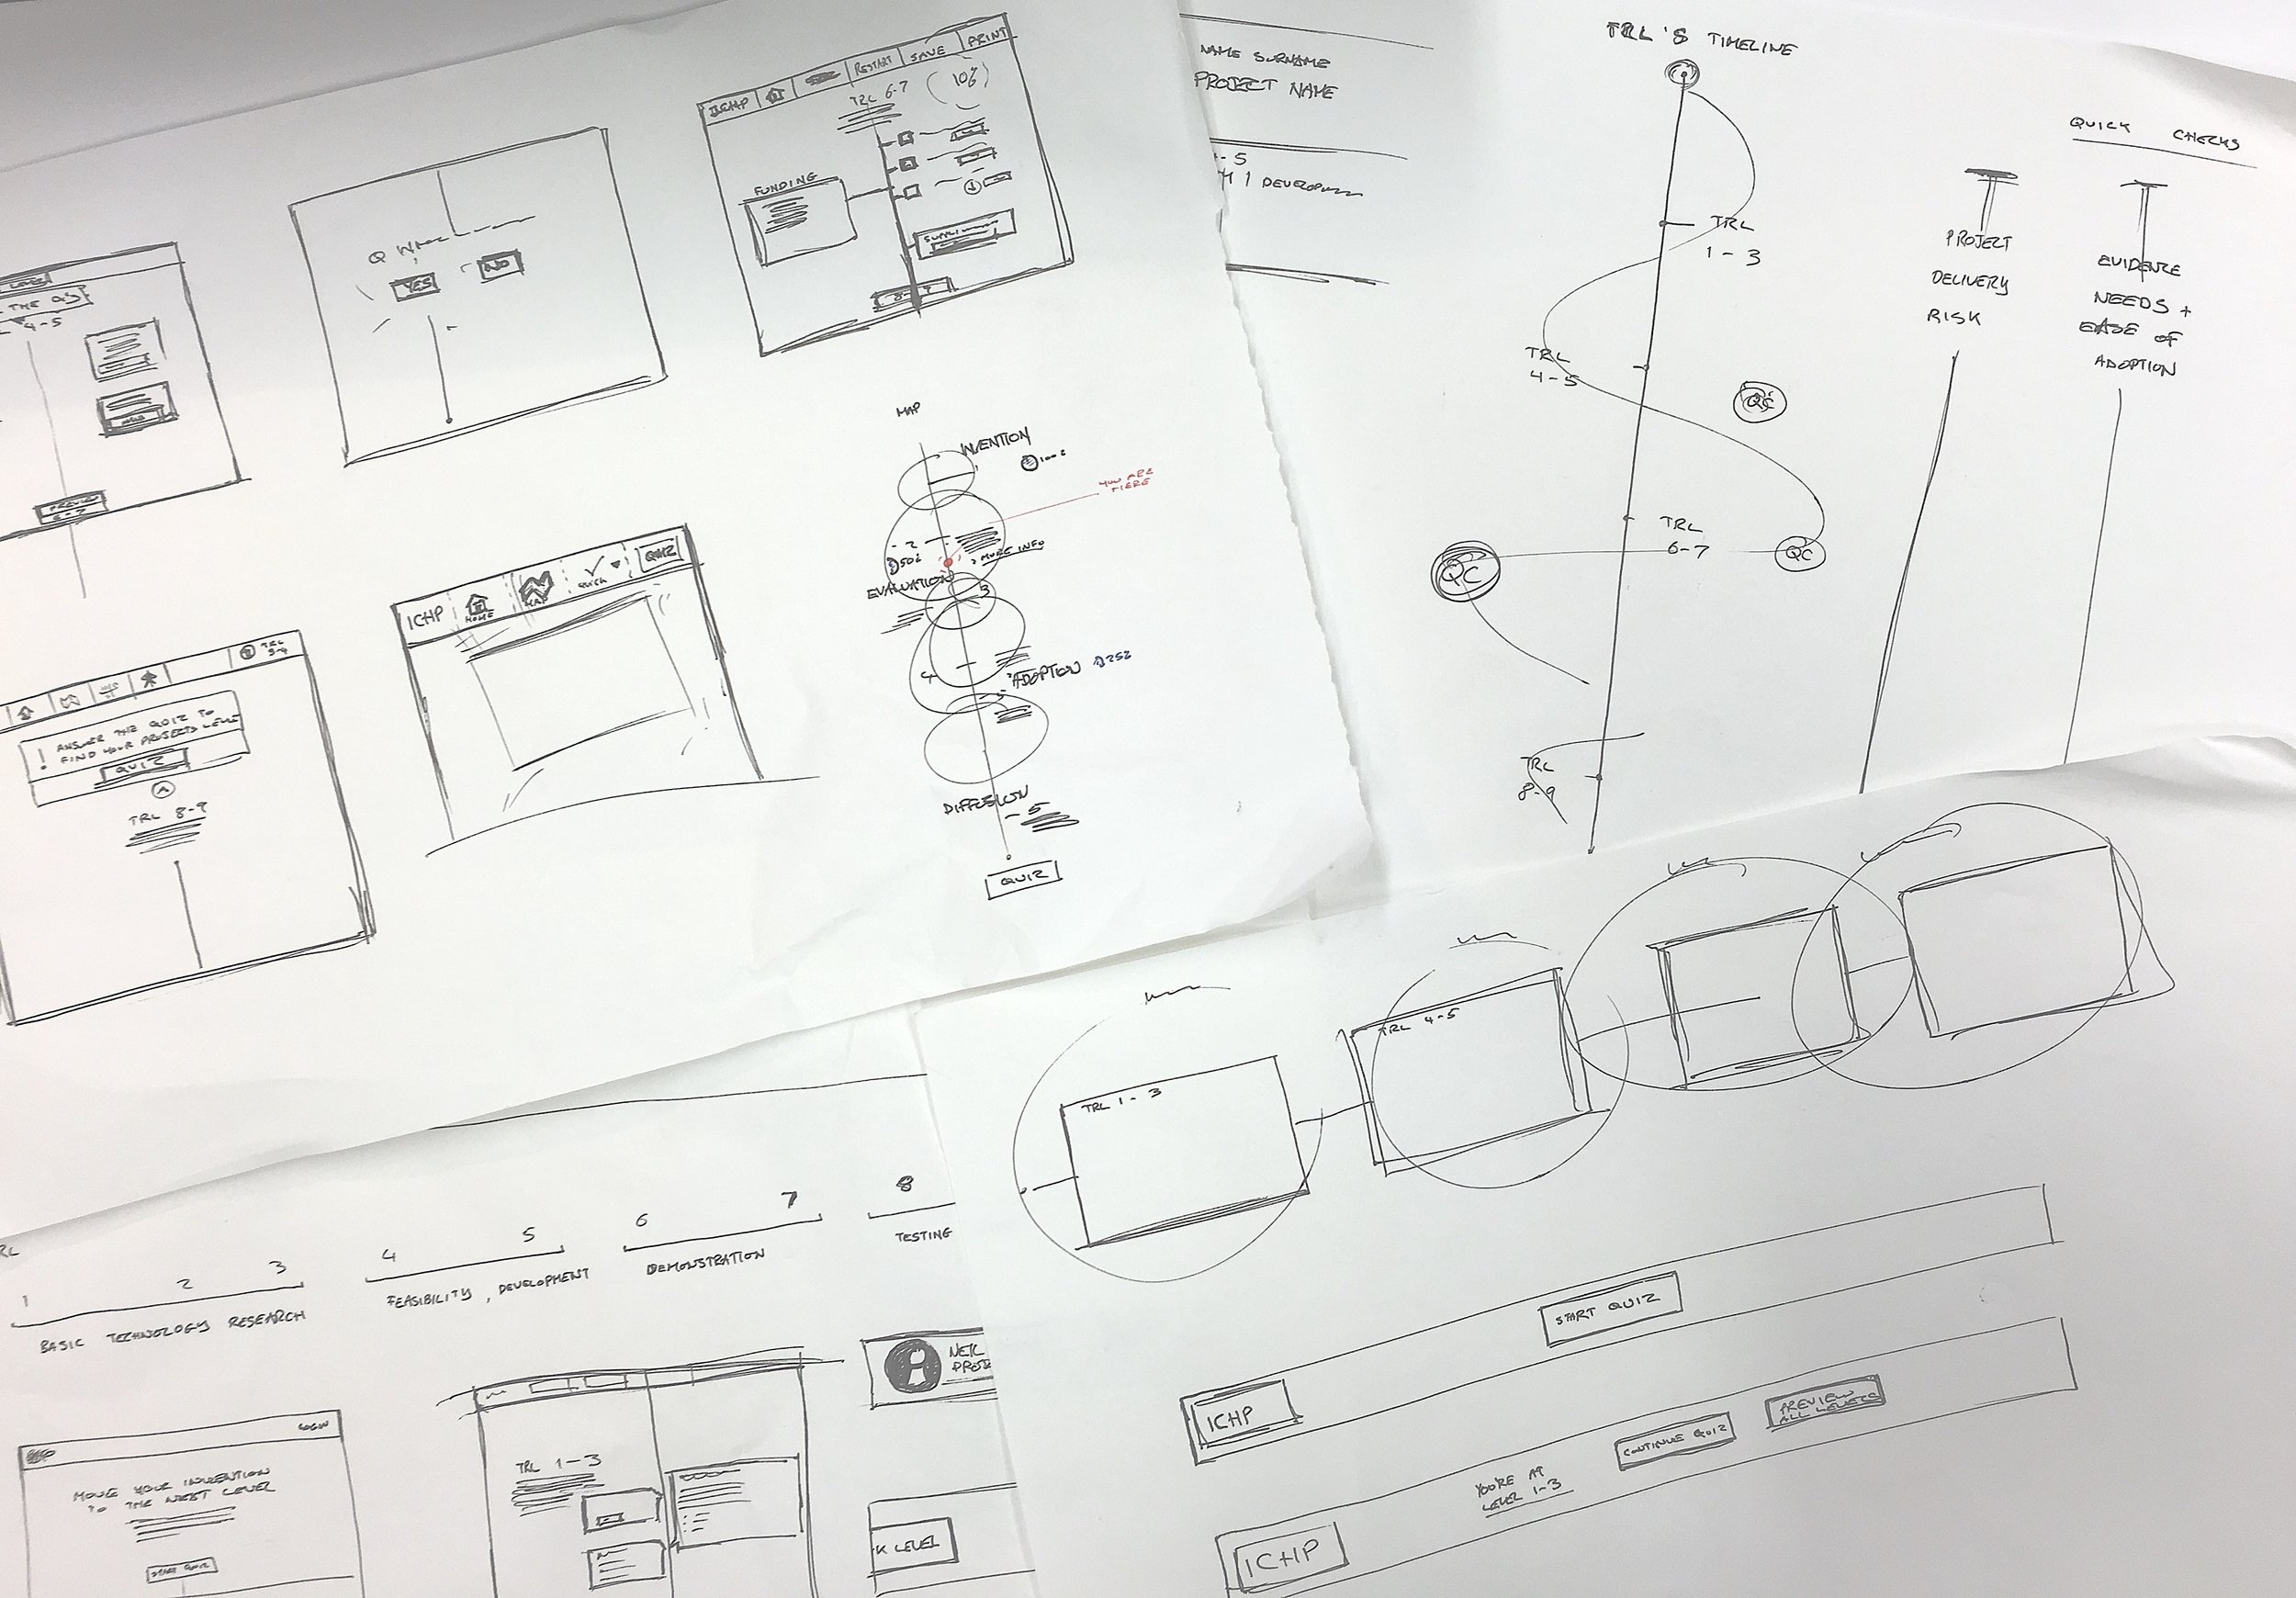 Sketching flows and interface ideas